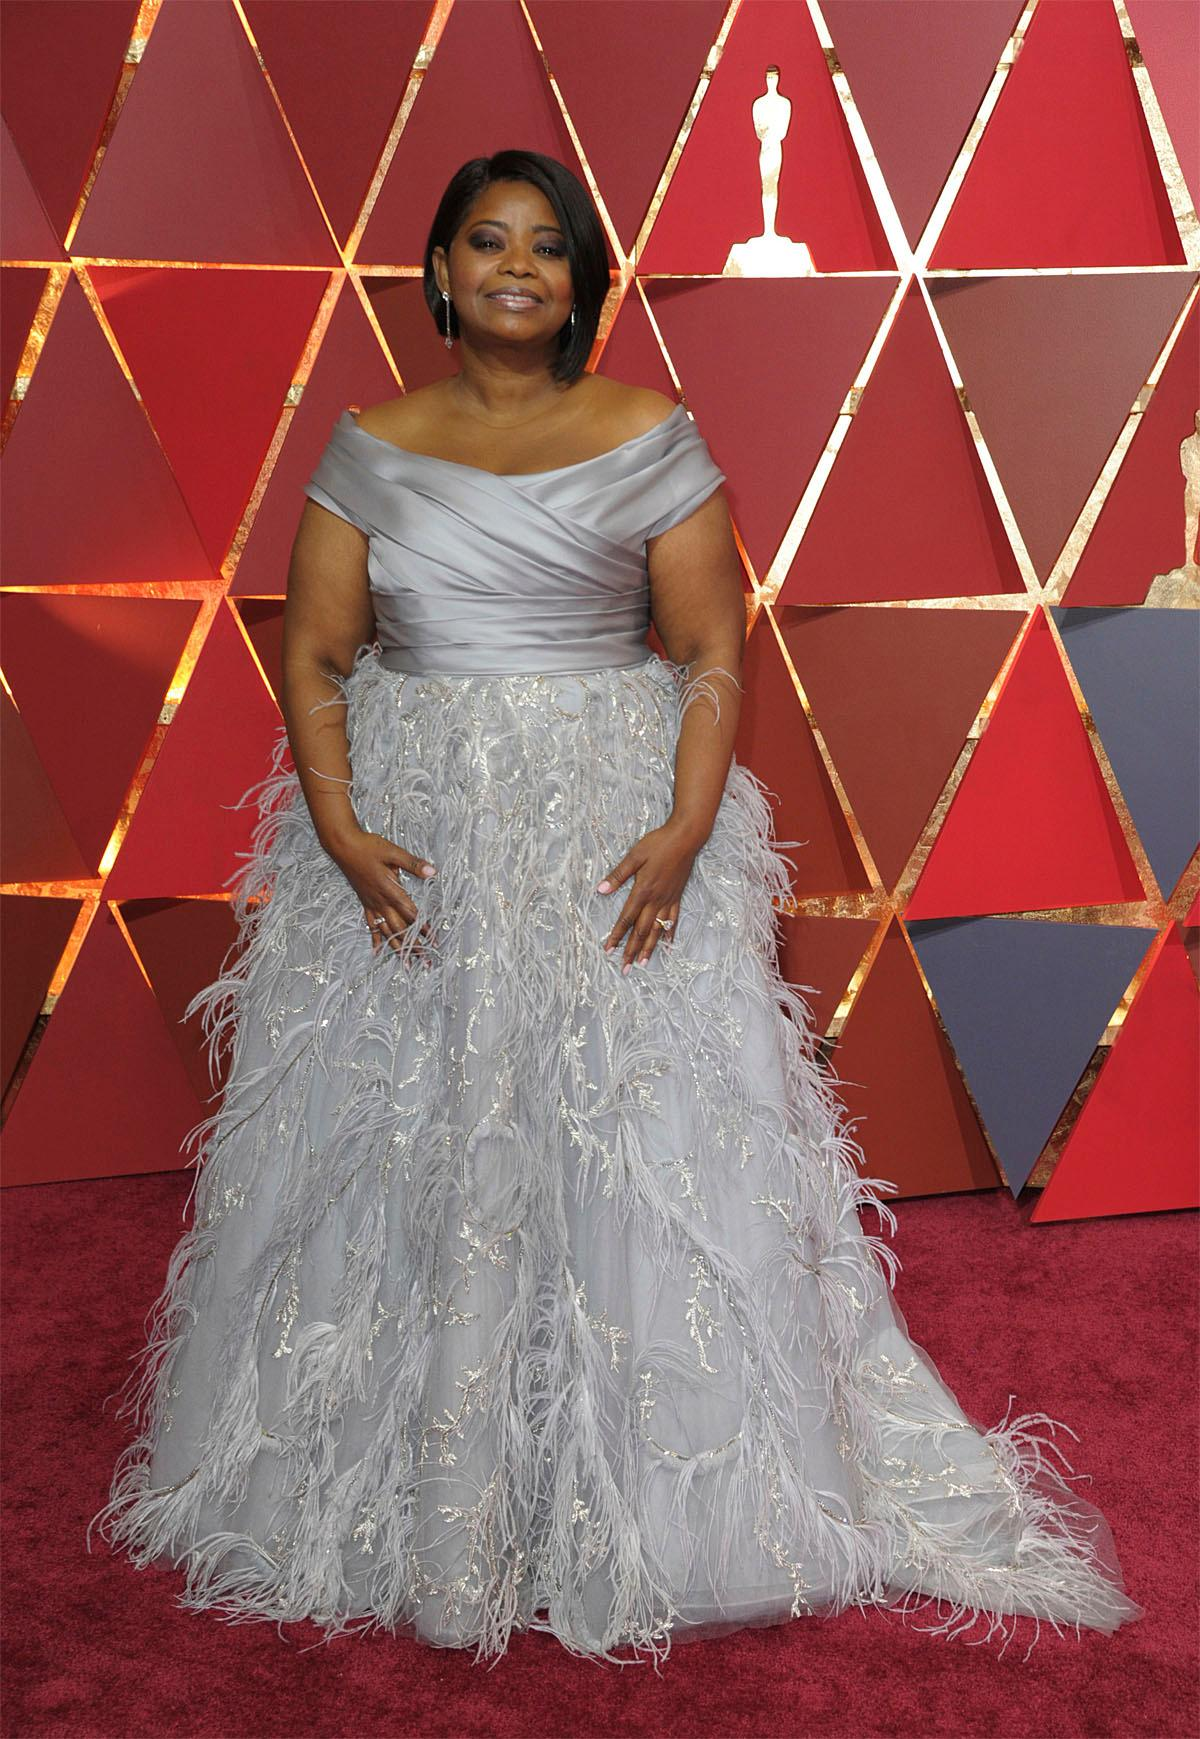 Octavia Spencer arrives at the Oscars on Sunday, Feb. 26, 2017, at the Dolby Theatre in Los Angeles. (Photo by Richard Shotwell/Invision/AP)